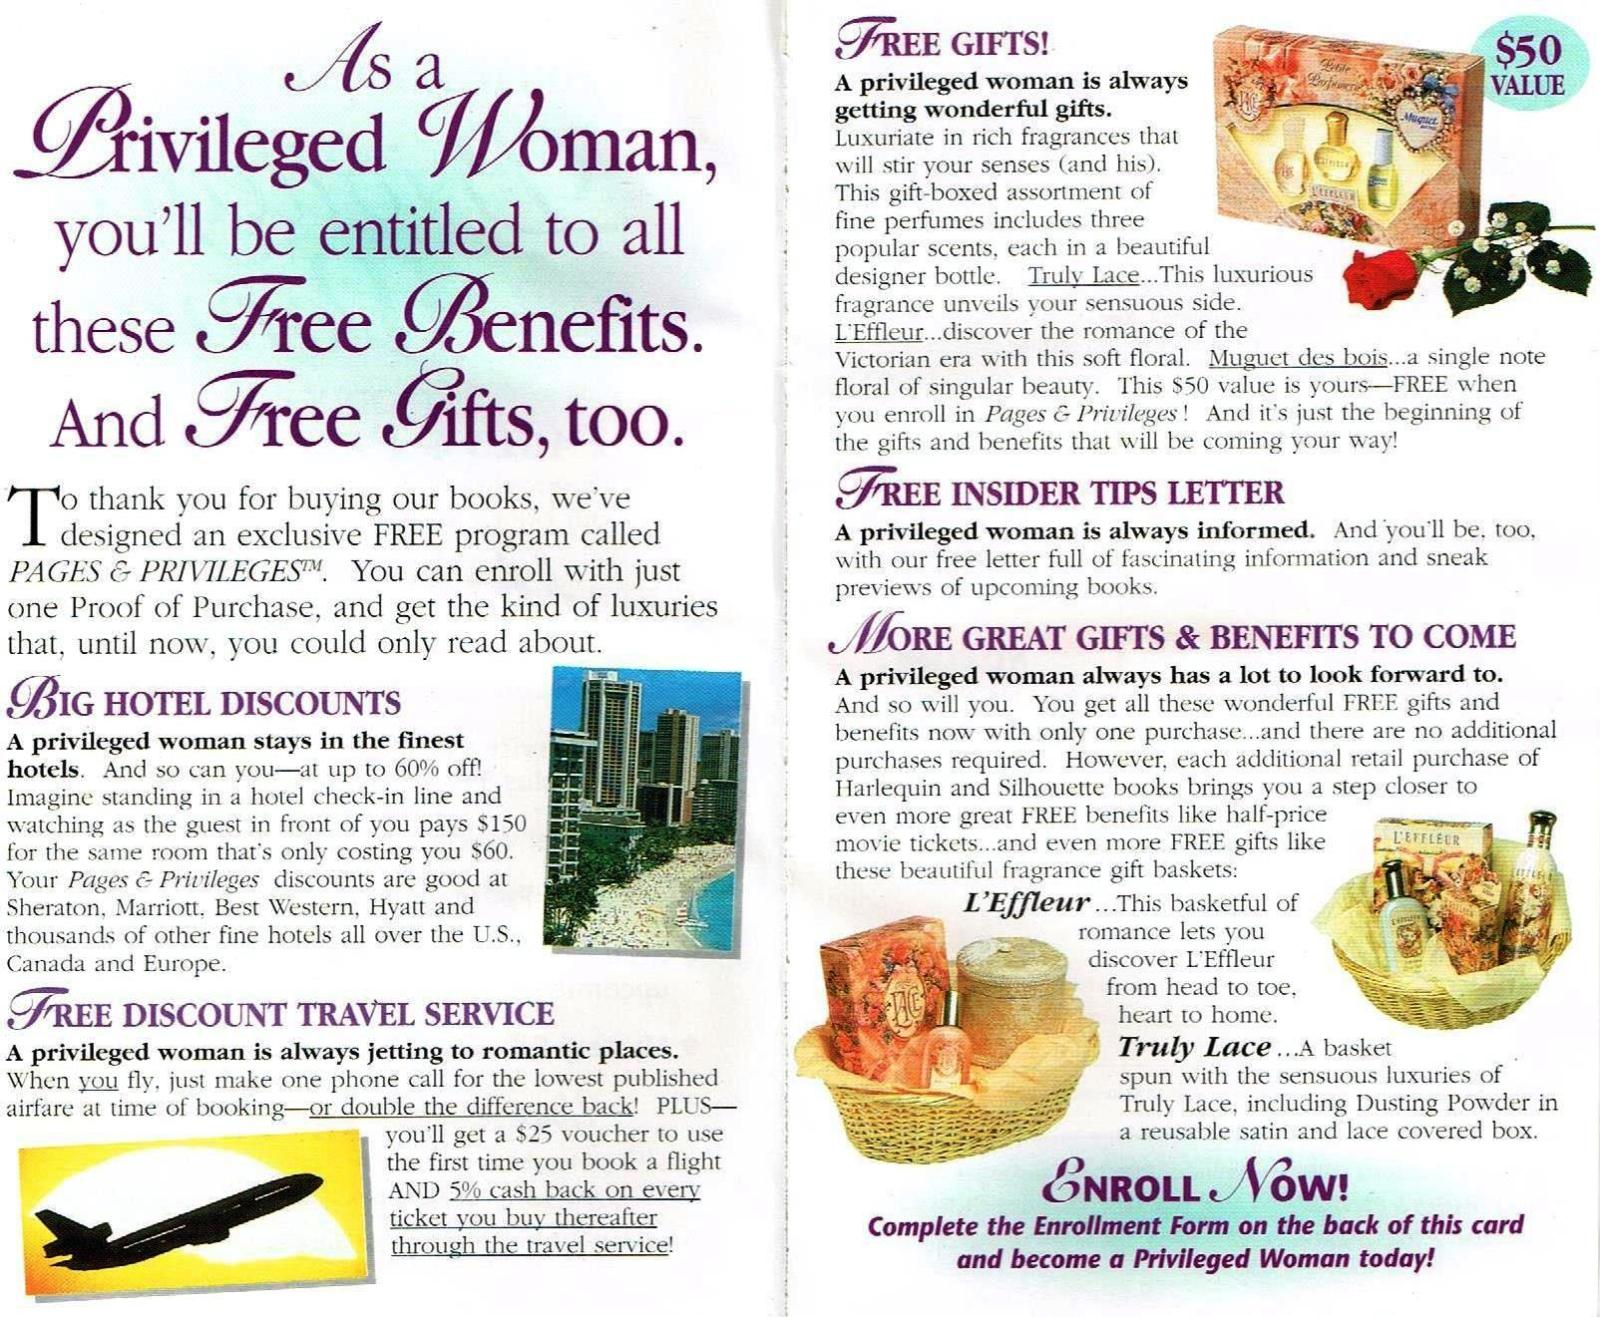 Privileged Woman Insert 2-3